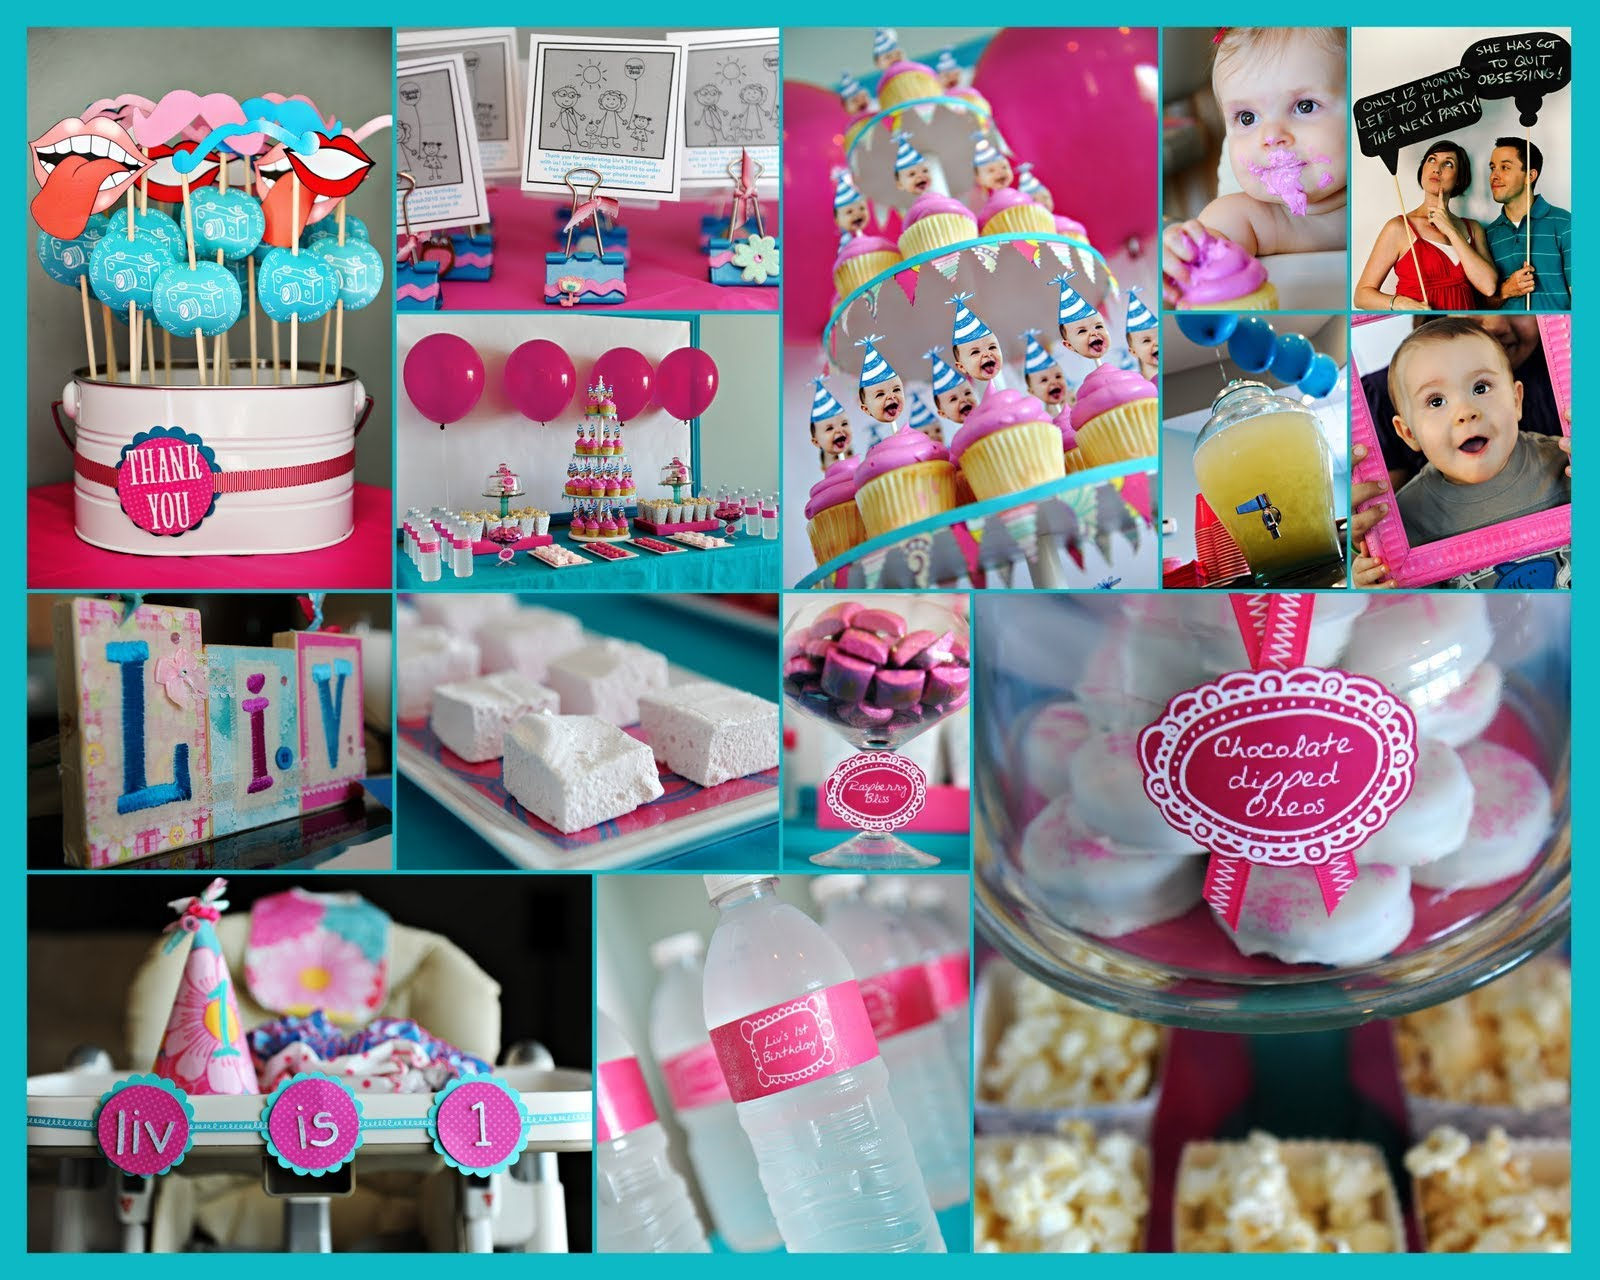 1st birthday party activities for kids ; 521a2afbdddfa4fab1dc96d26dcf1035